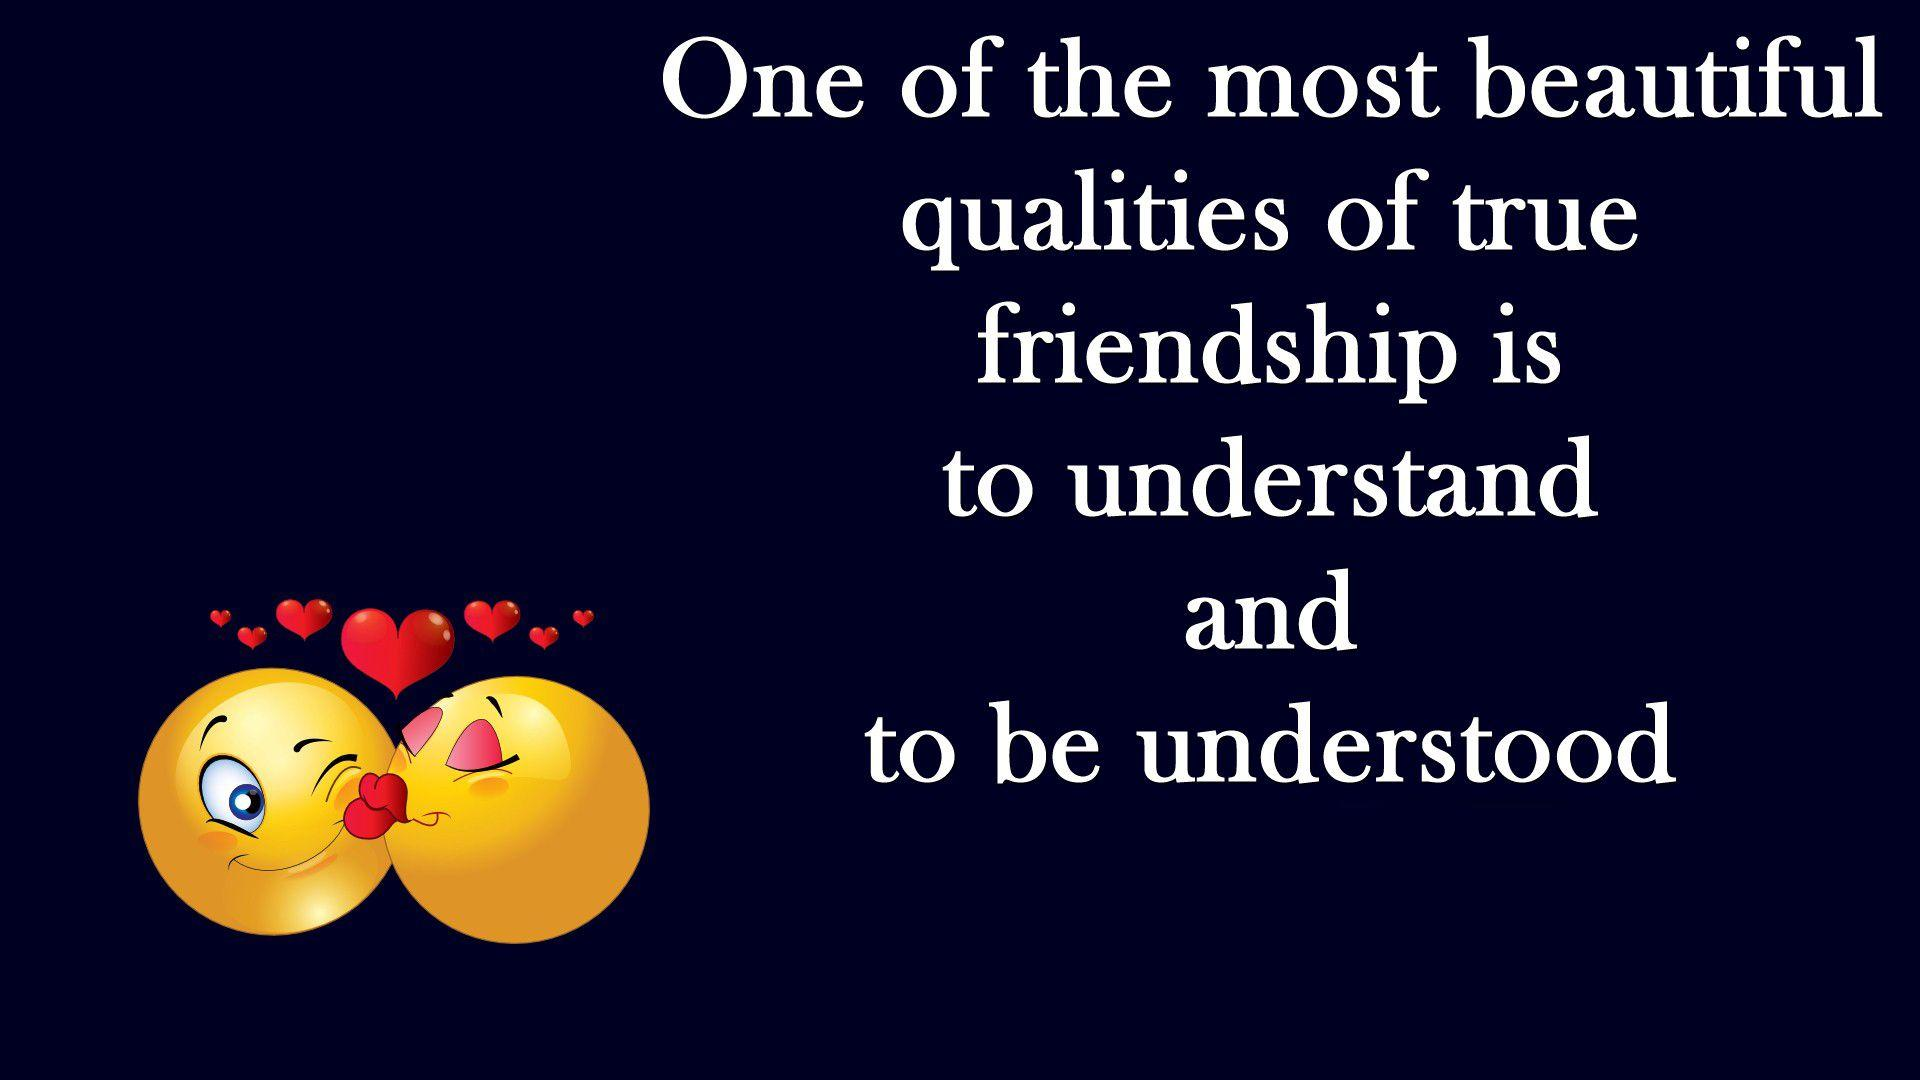 Happy Friendship Day Wallpaper Photos Images Pictures For Friends .